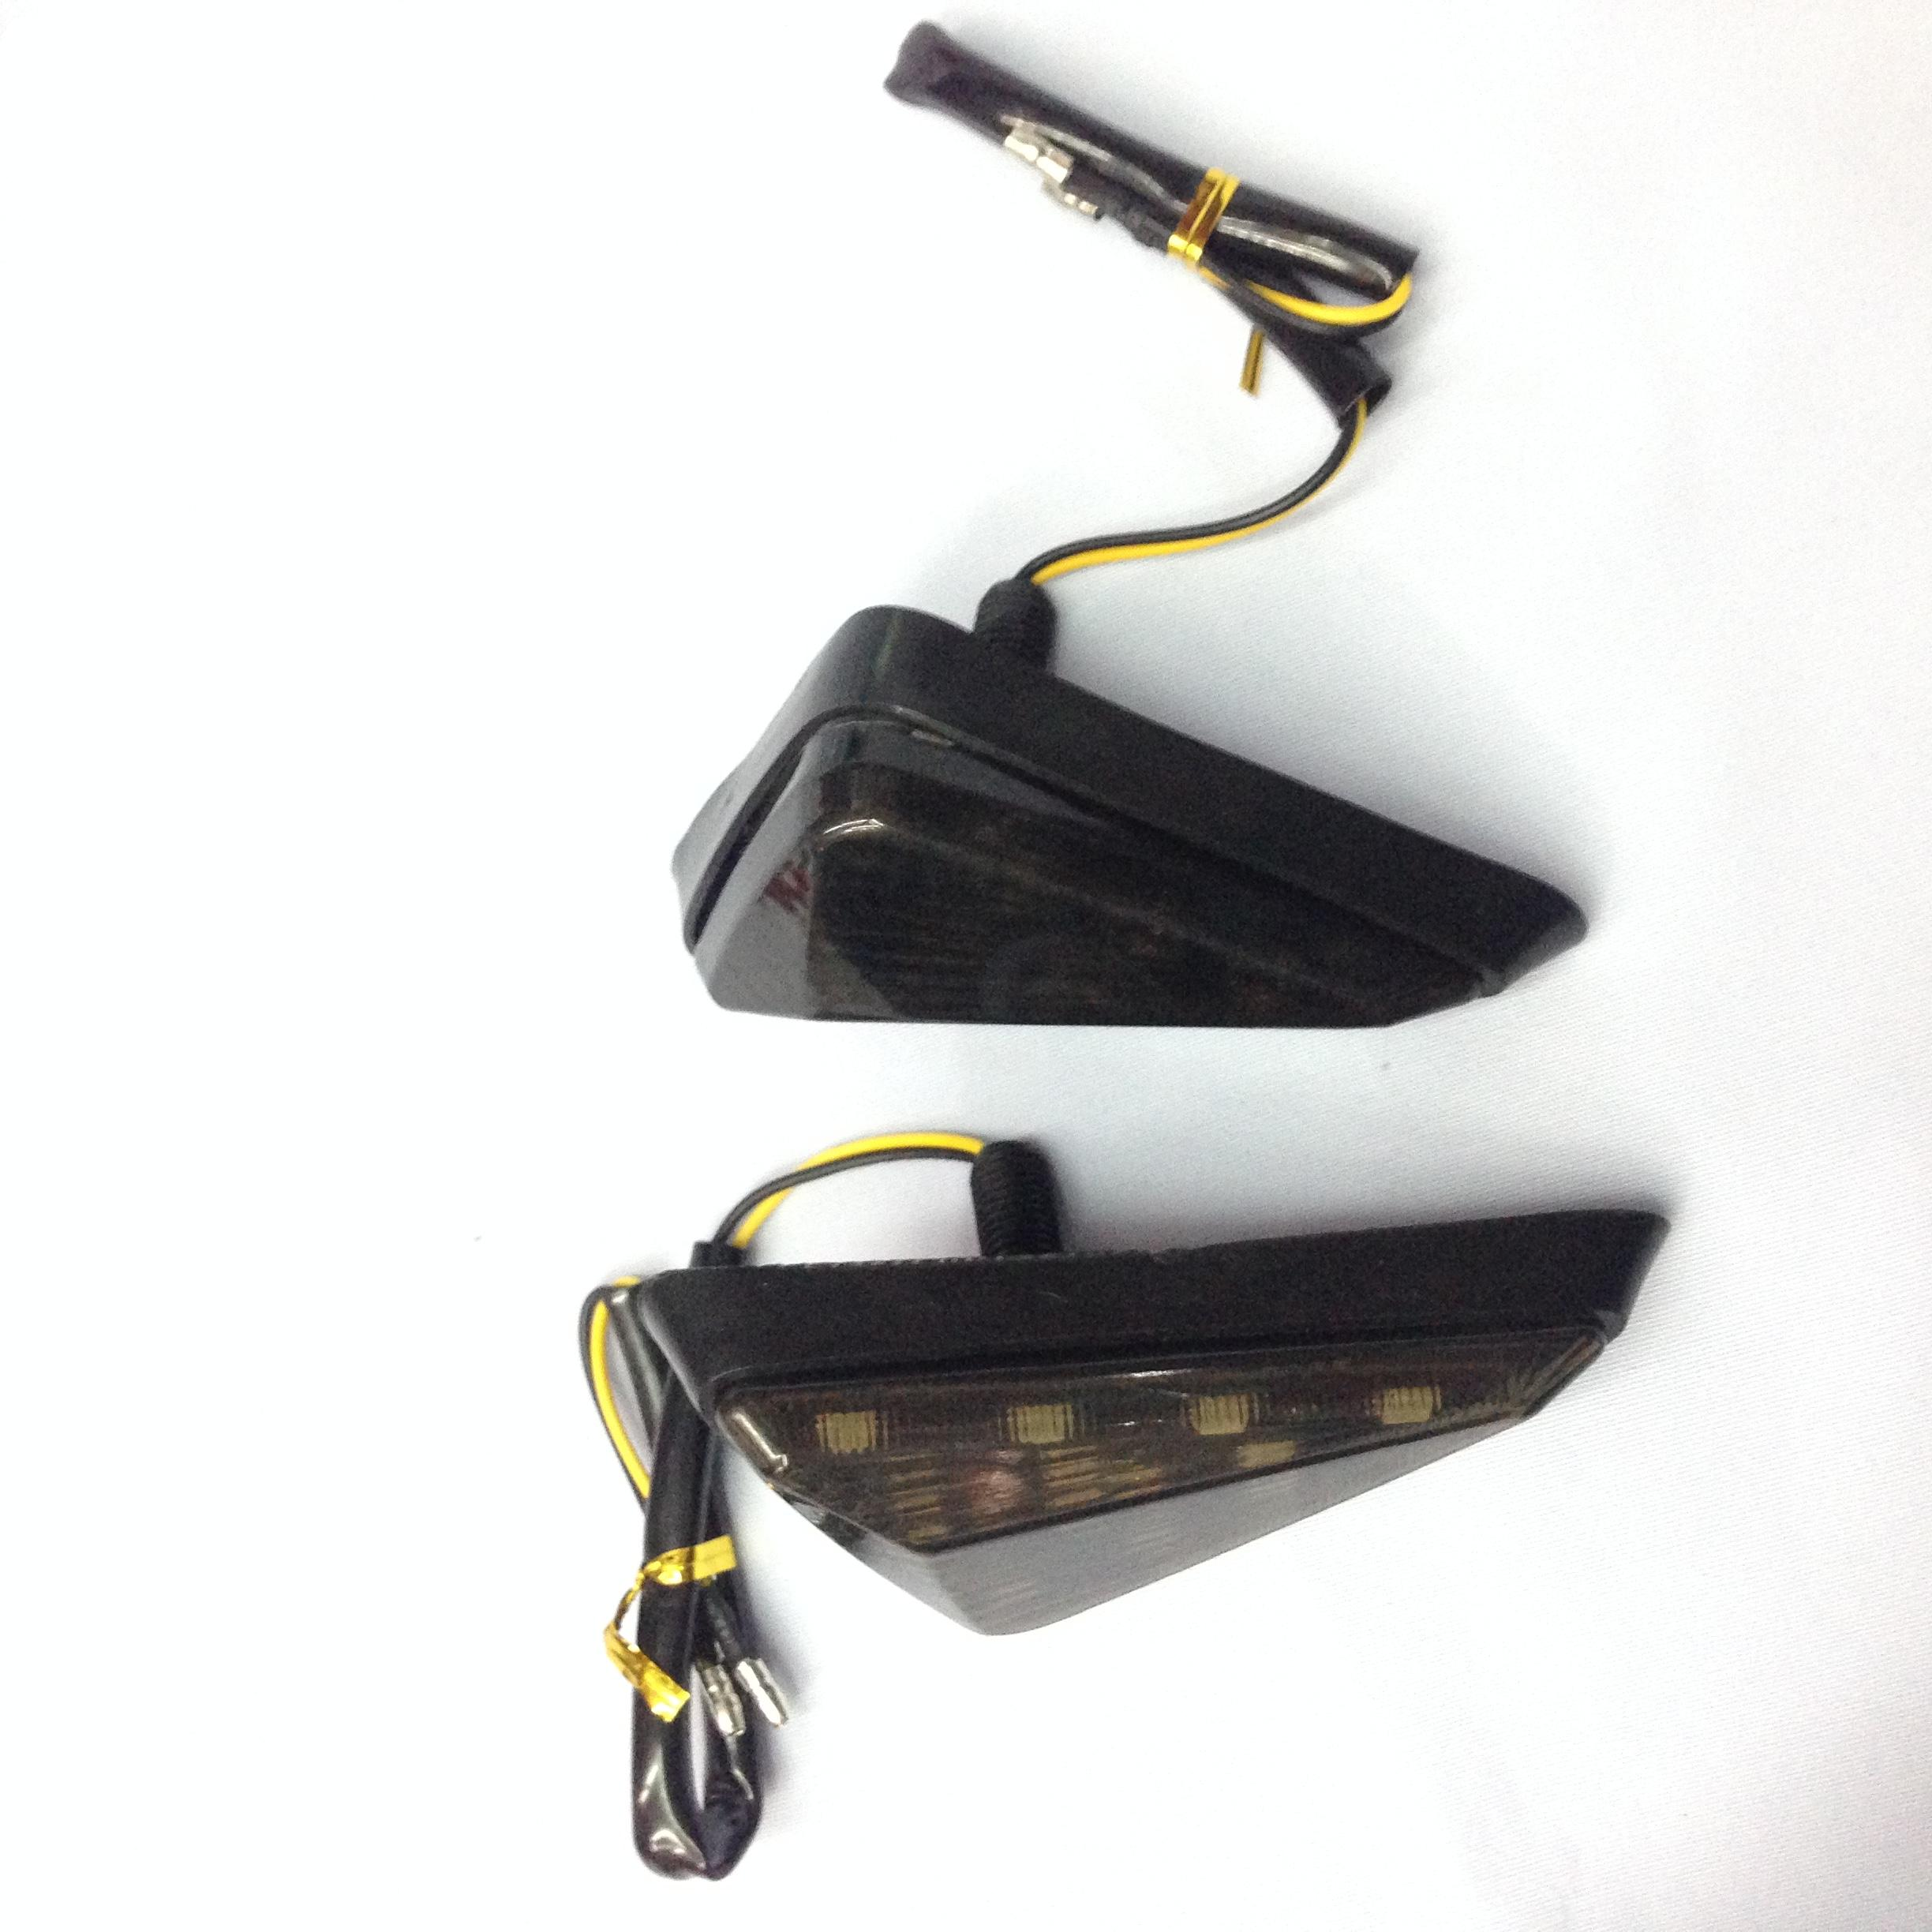 Car Horn For Sale Lights Online Brands Prices Reviews In Plymouth Fog Wiring Diagram Motorcycle D029 Signal Light